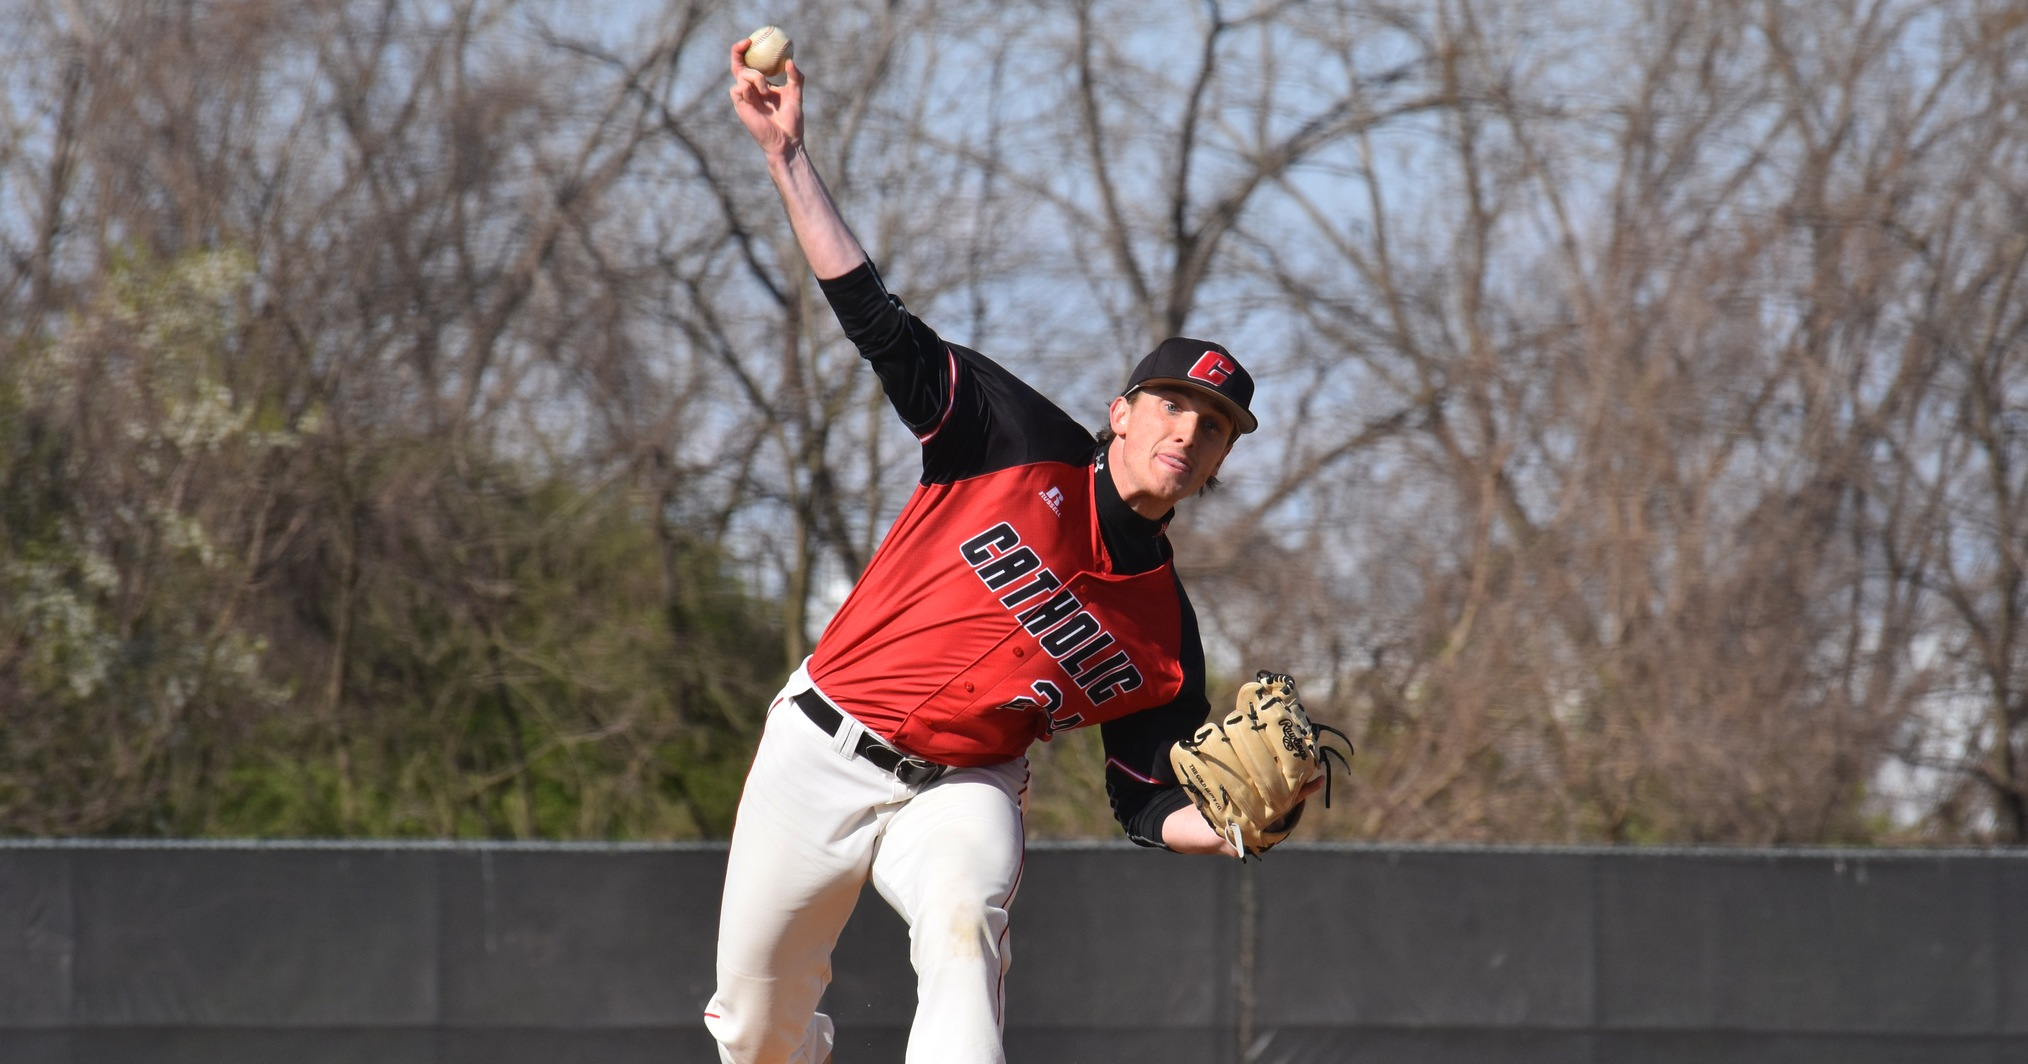 Gately Goes the Distance in Win Over Blue Jays